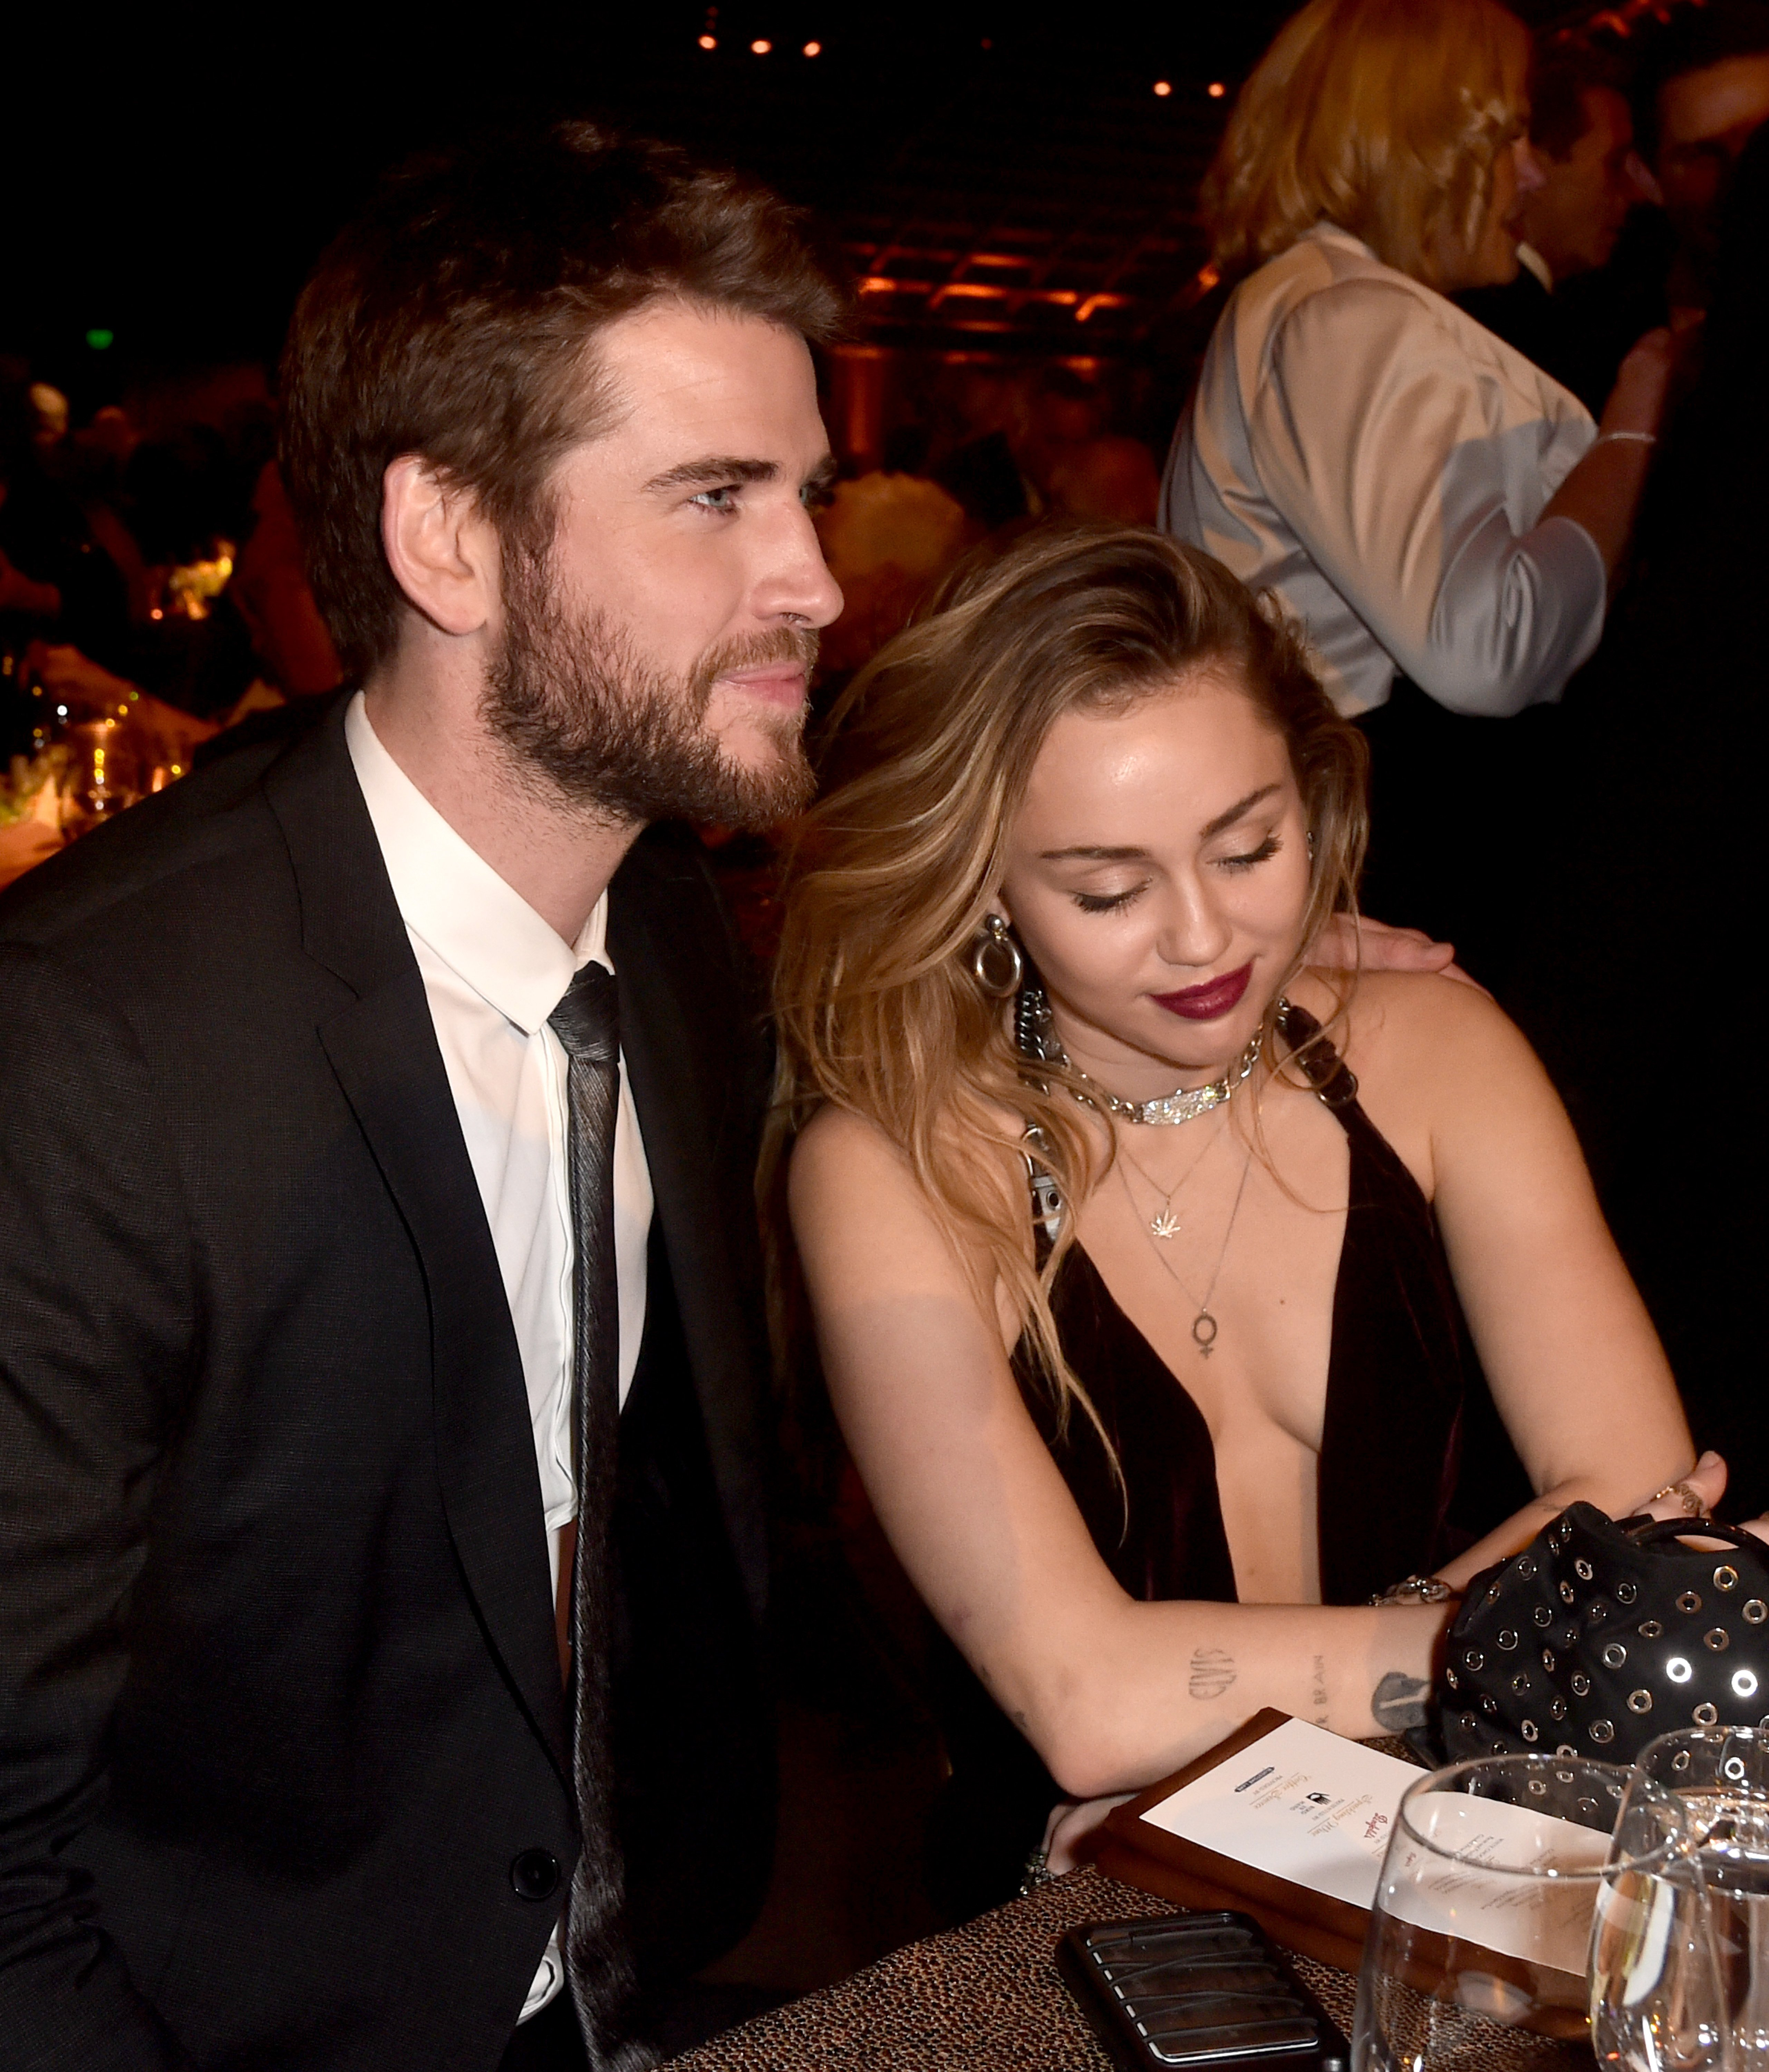 Liam Hemsworth and Miley Cyrus attend the 16th annual G'Day USA Los Angeles Gala at 3LABS on January 26, 2019 in Culver City, California. | Photo: Getty Images